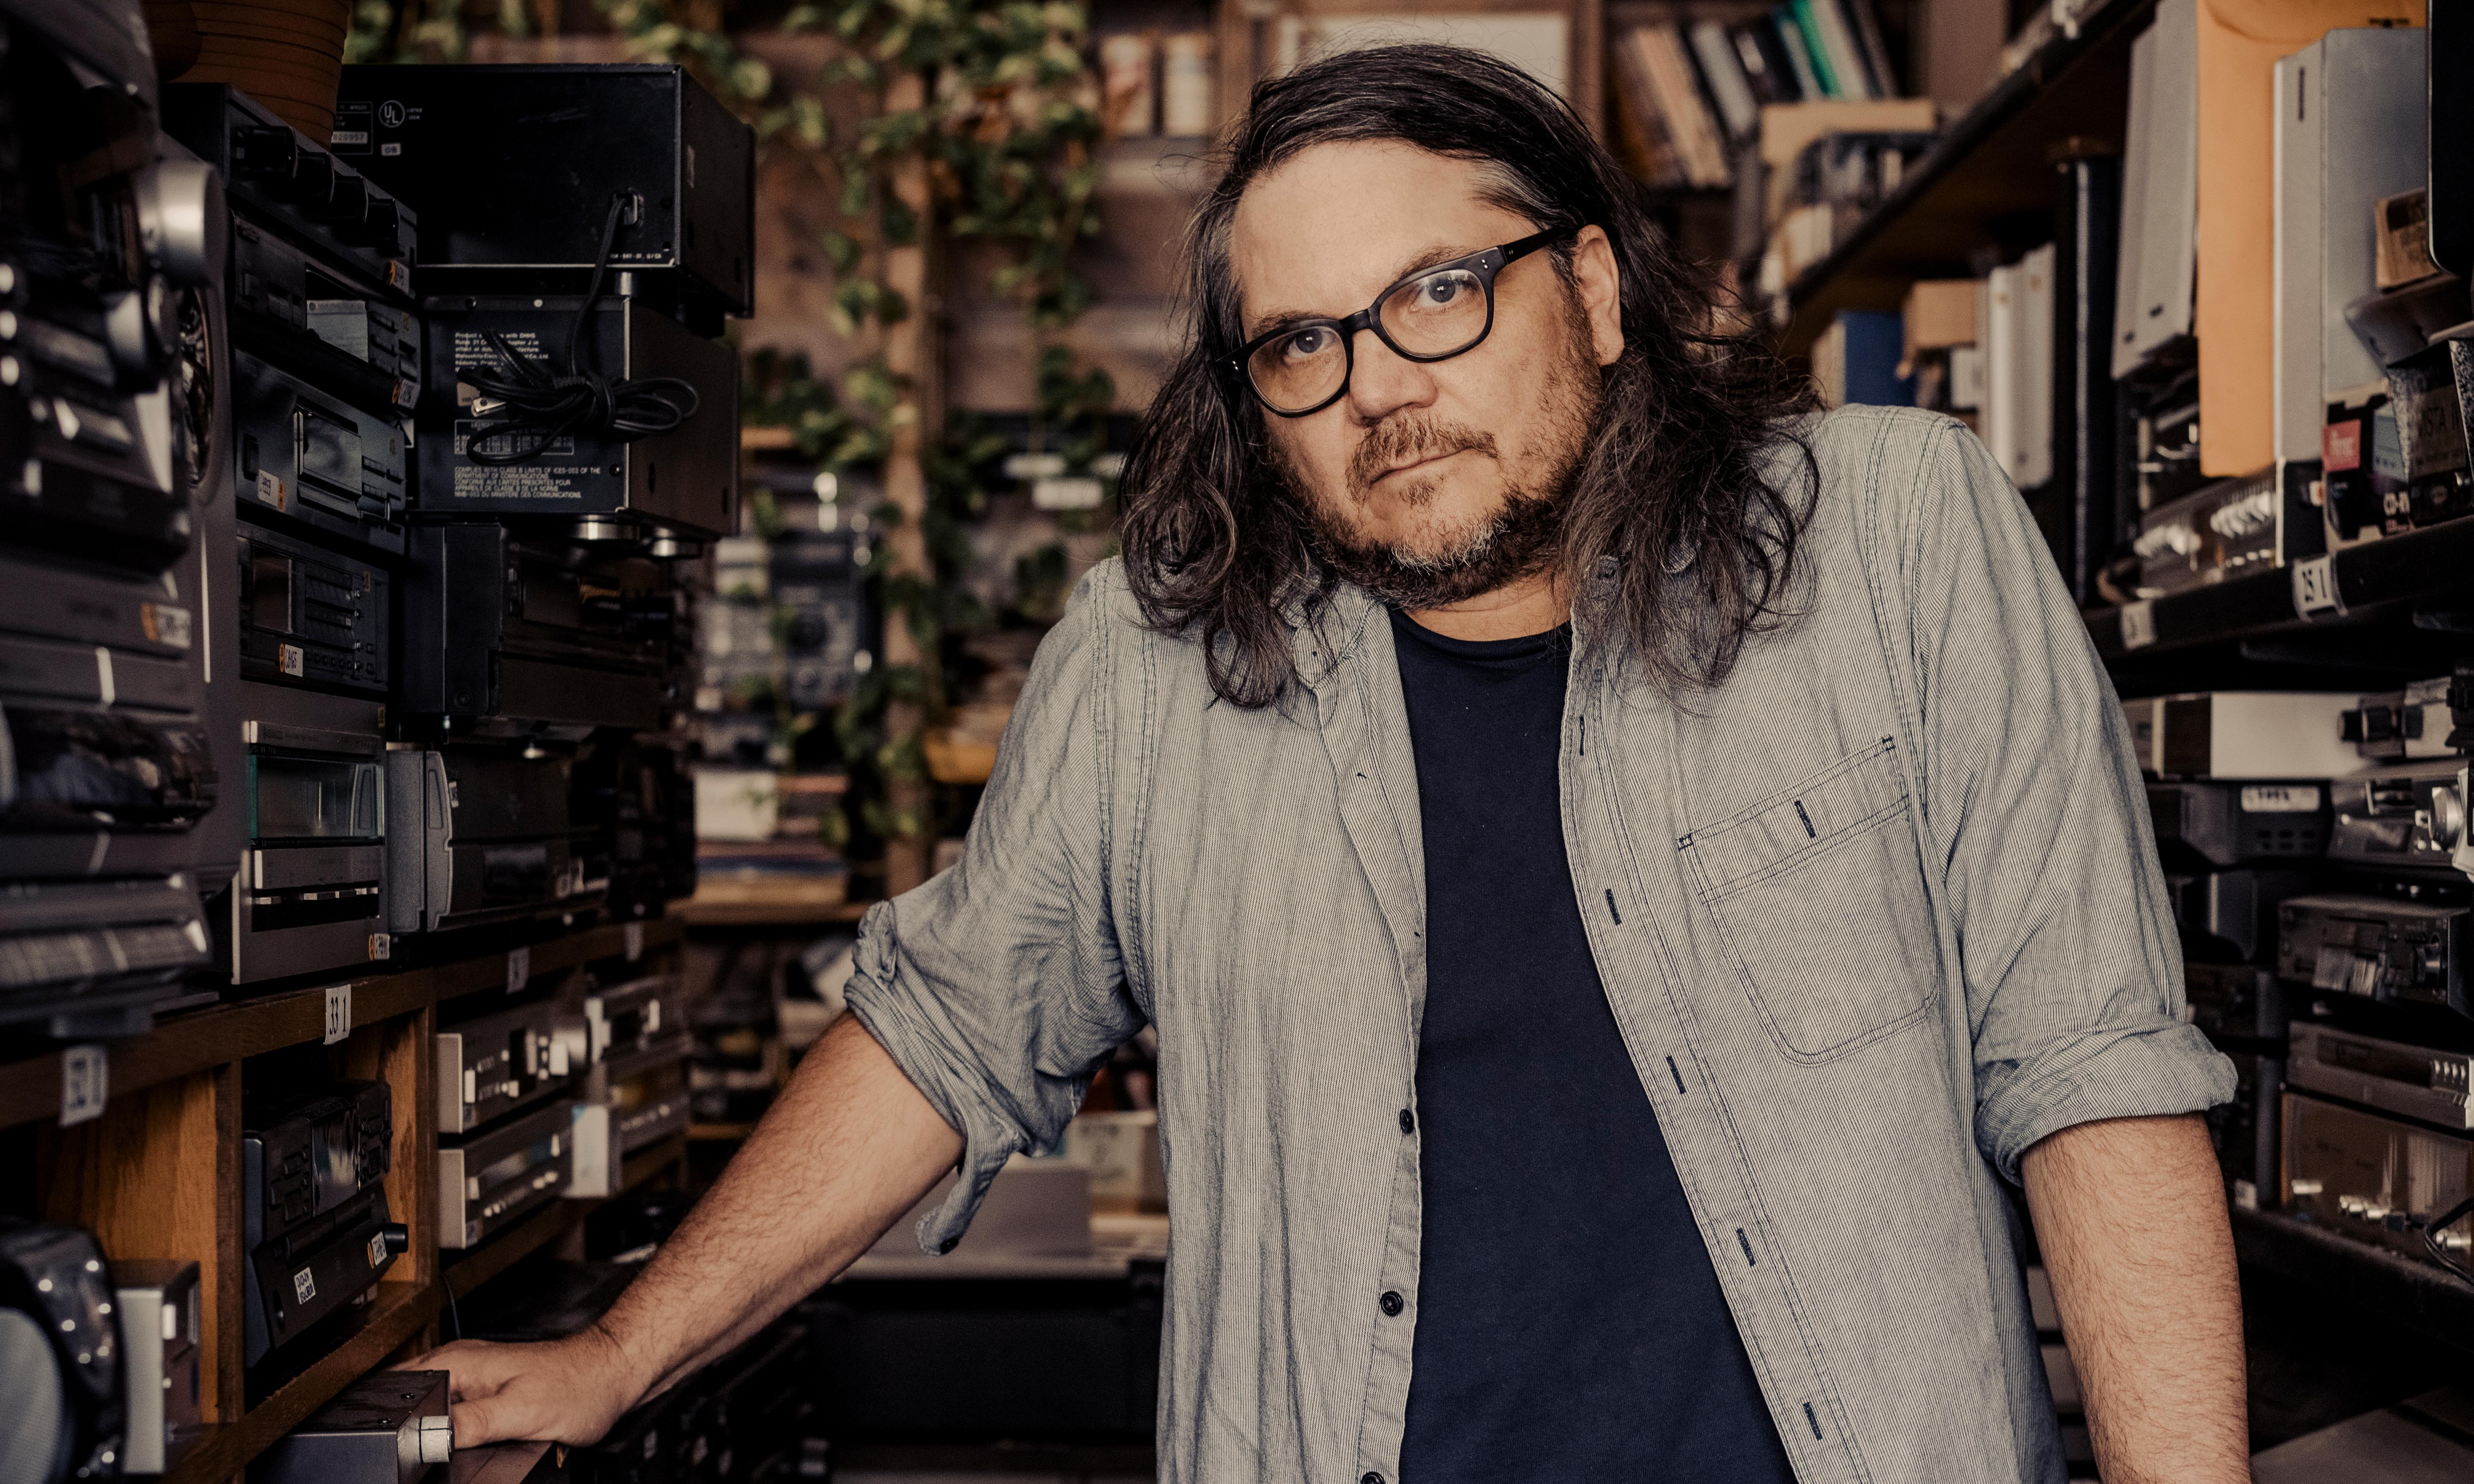 Wilco's Jeff Tweedy on addiction, obsession and politics: 'White men are very fragile'